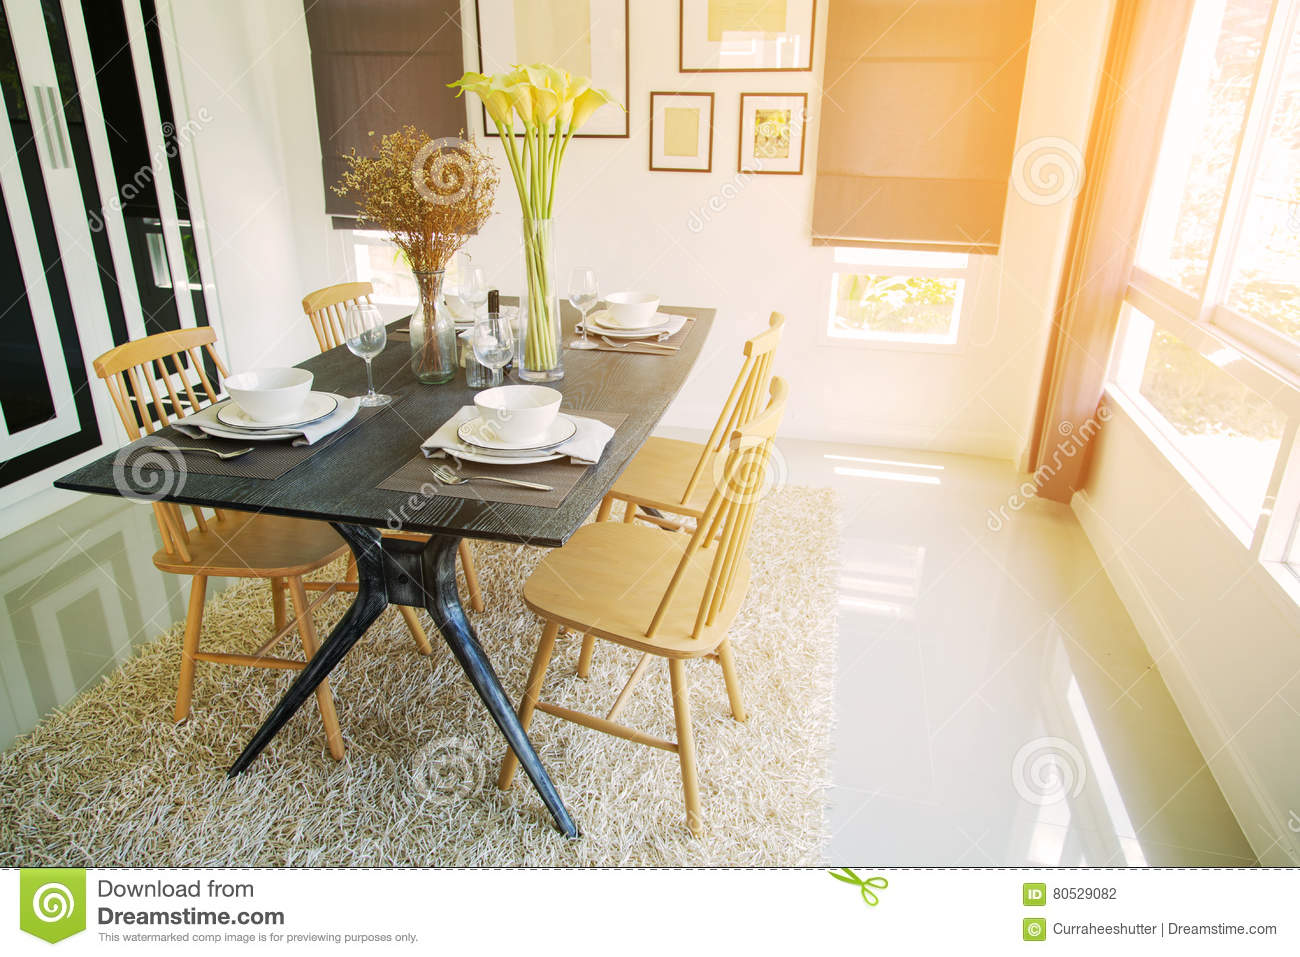 Modern Dining Room Interior With Warm Light From The Sun Relax Day In On Free And No Activity Family Time Food Enjoy